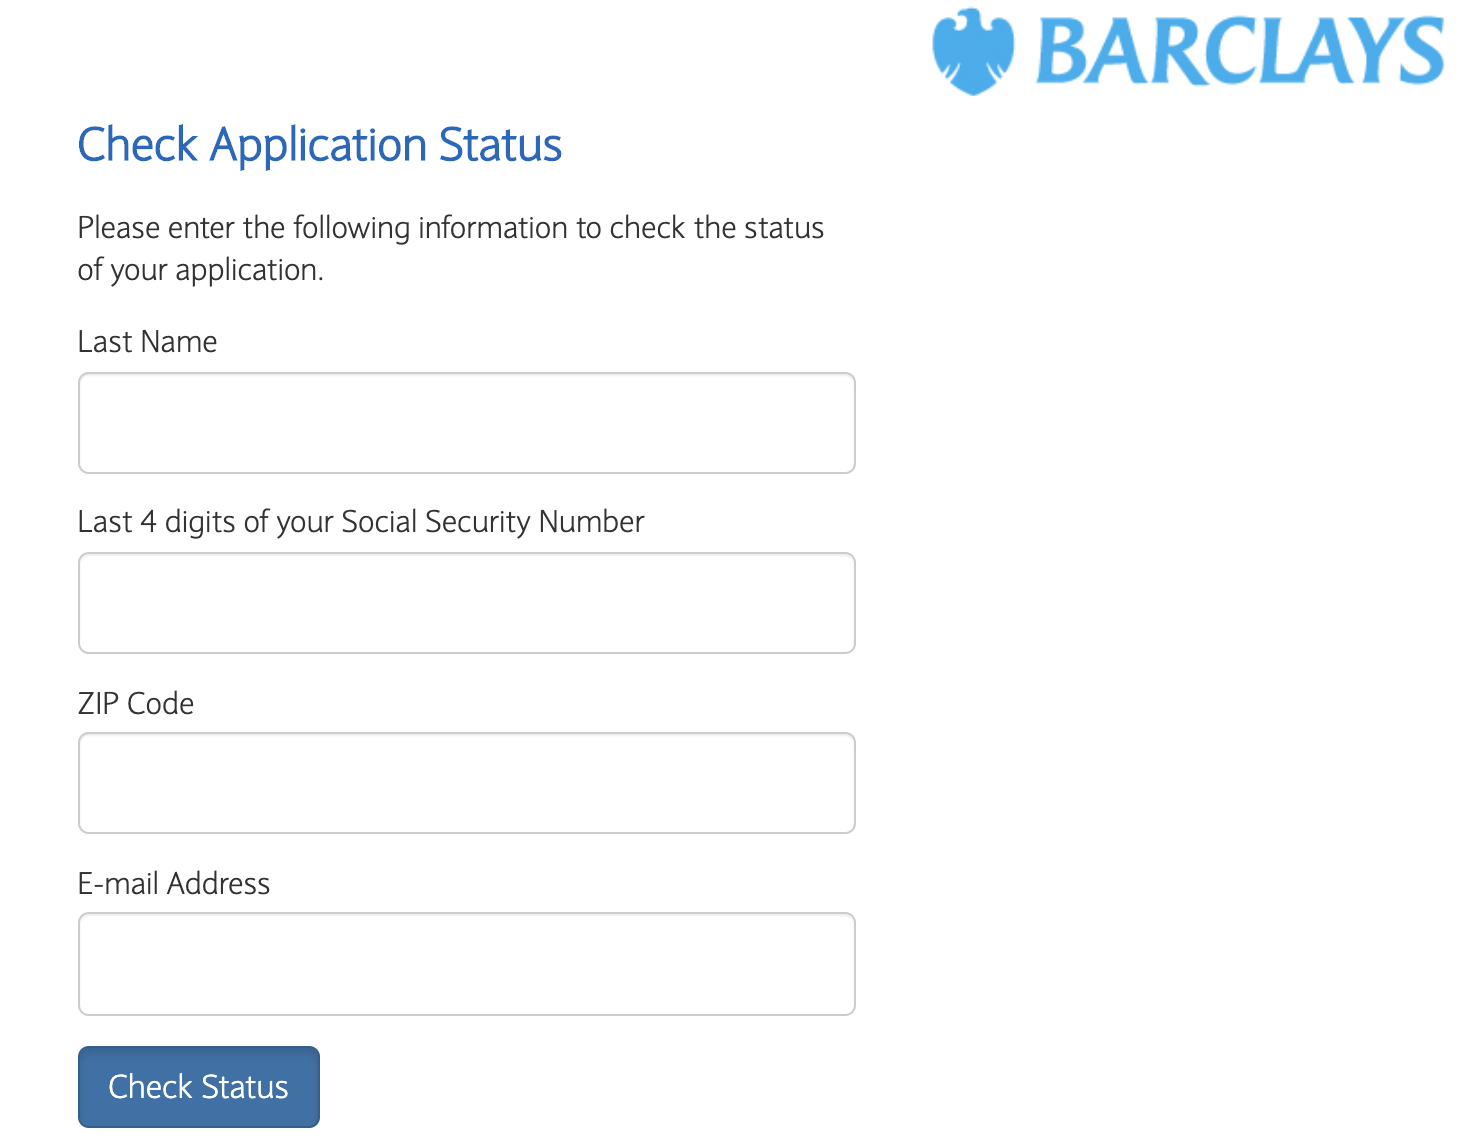 Barclays - Online App Check